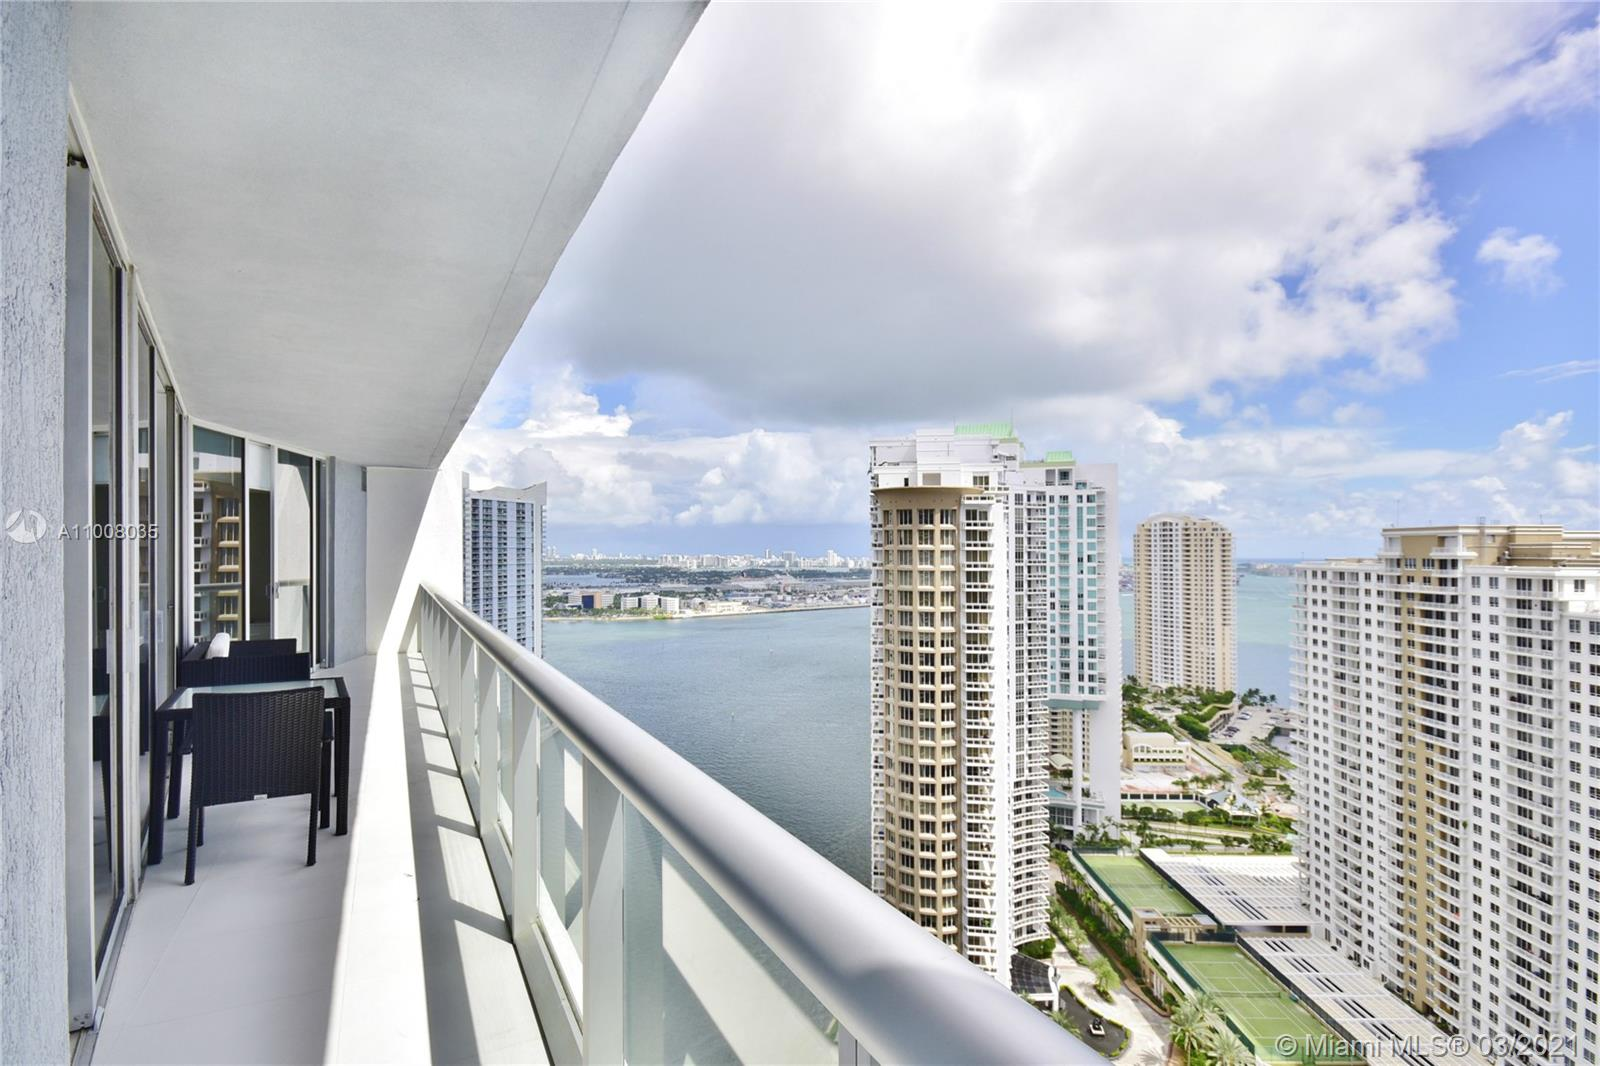 Icon Brickell 1 #3205 - 465 BRICKELL AVENUE #3205, Miami, FL 33131